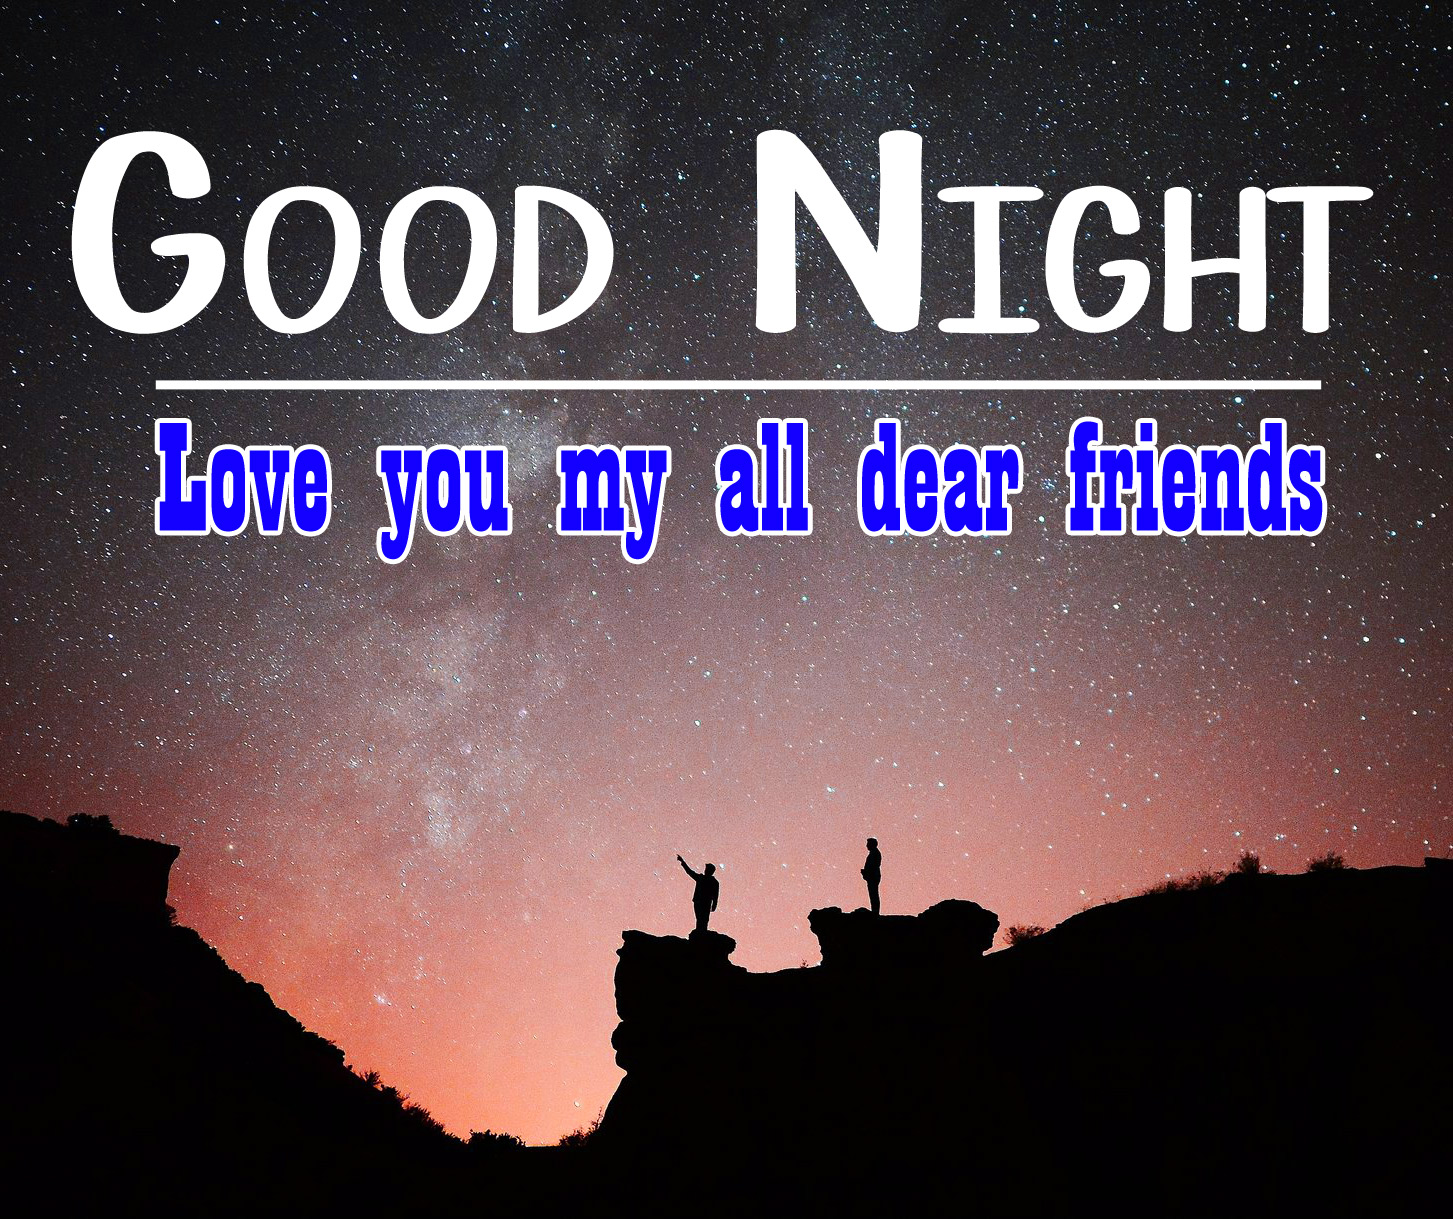 good night images for friend 1